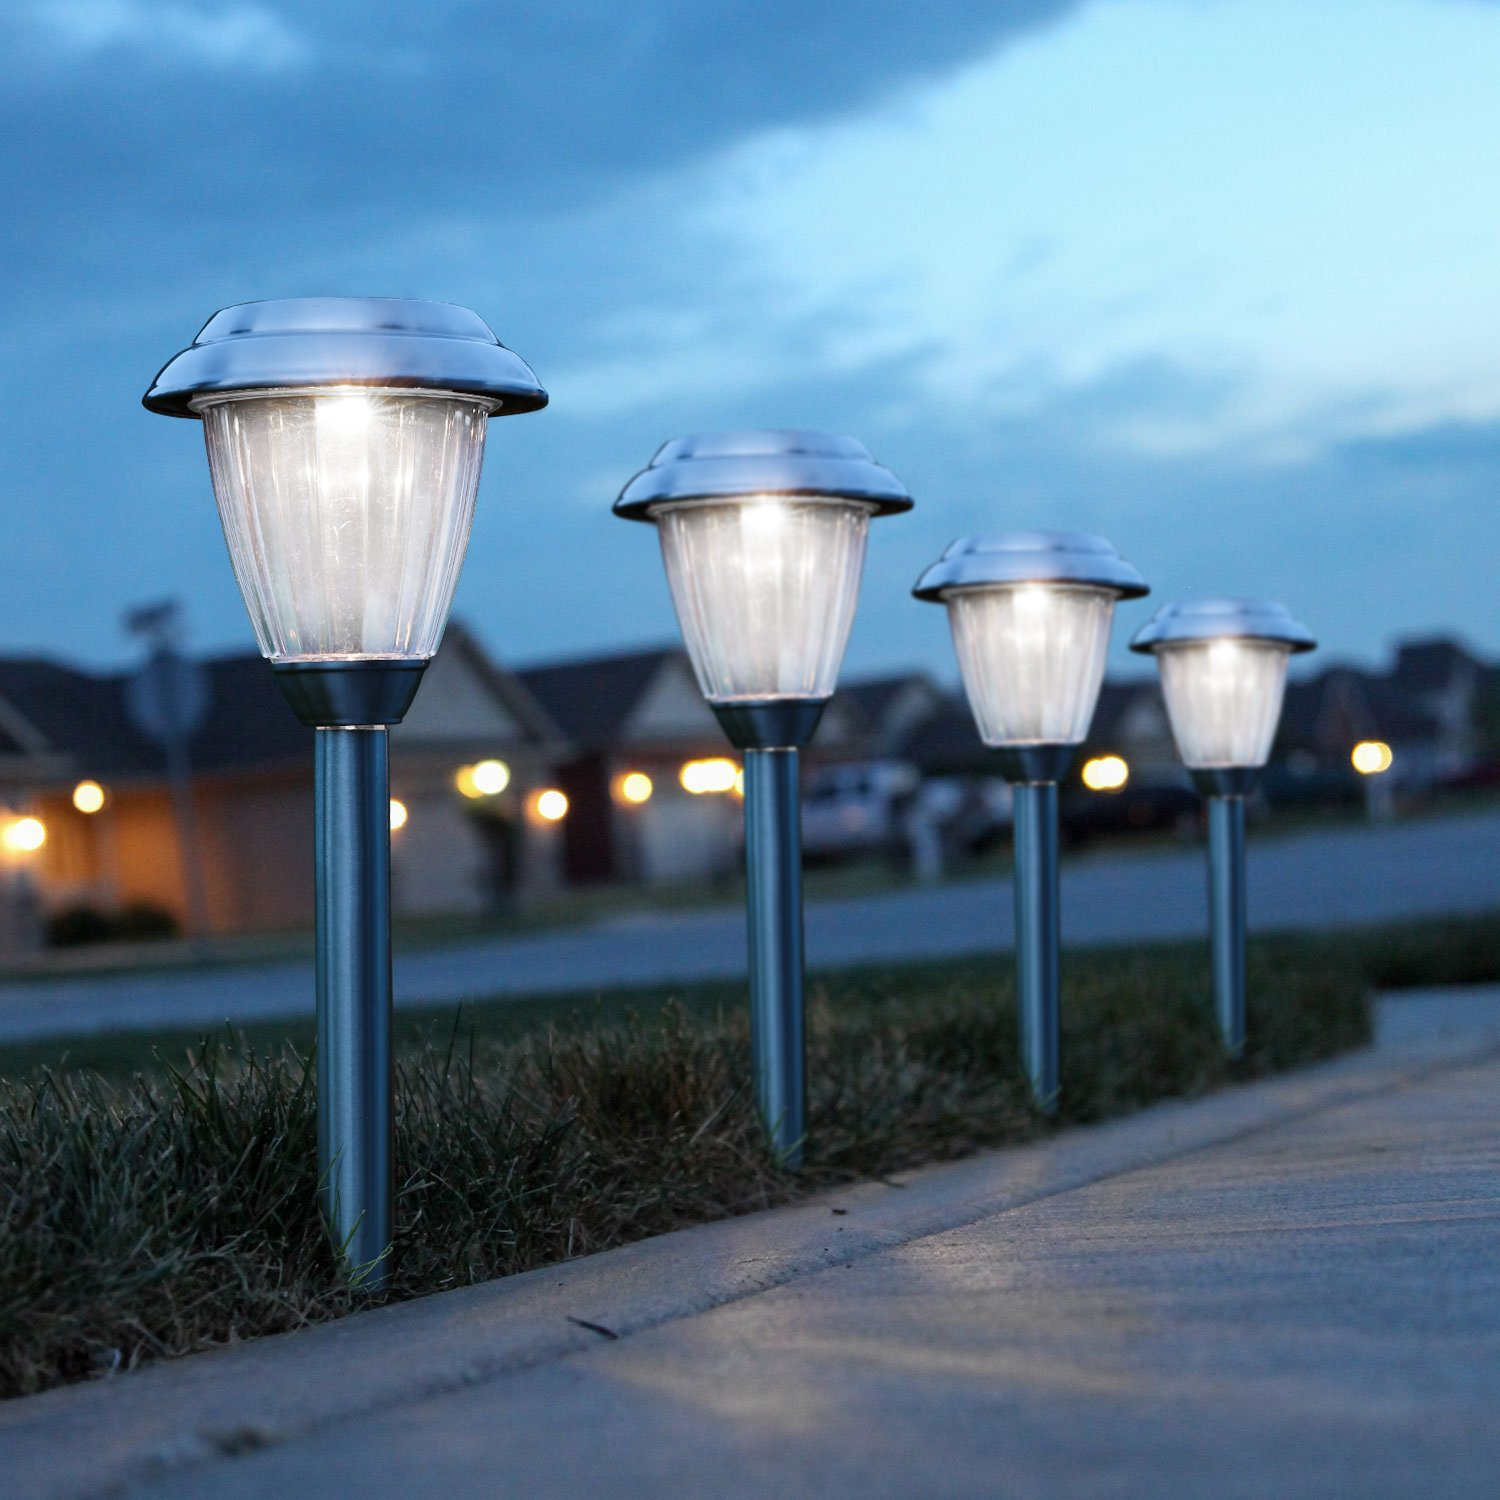 Best led solar garden lights reviews fortunerhome for Garden lights